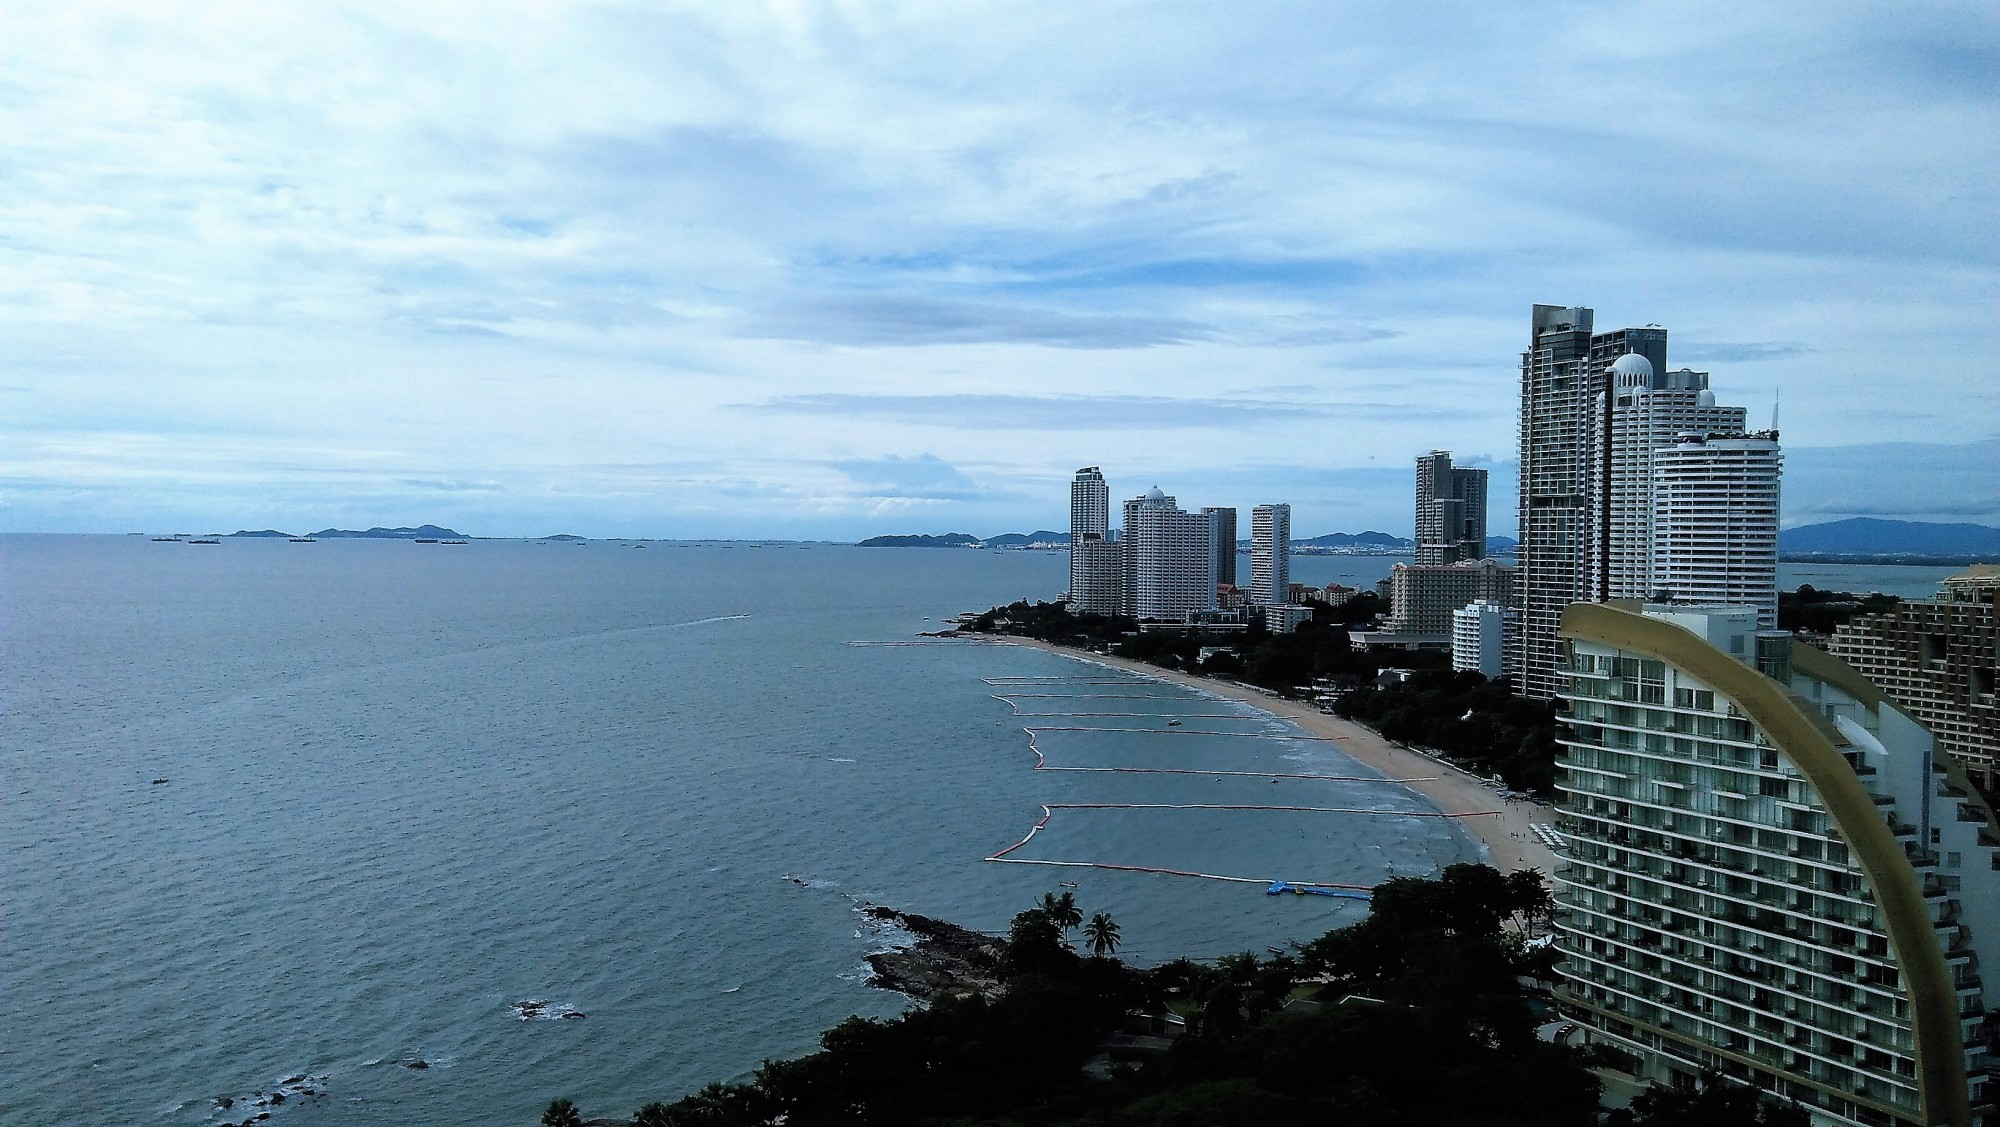 image-of-pattaya-bay-viewed-from-high-rise-hotel